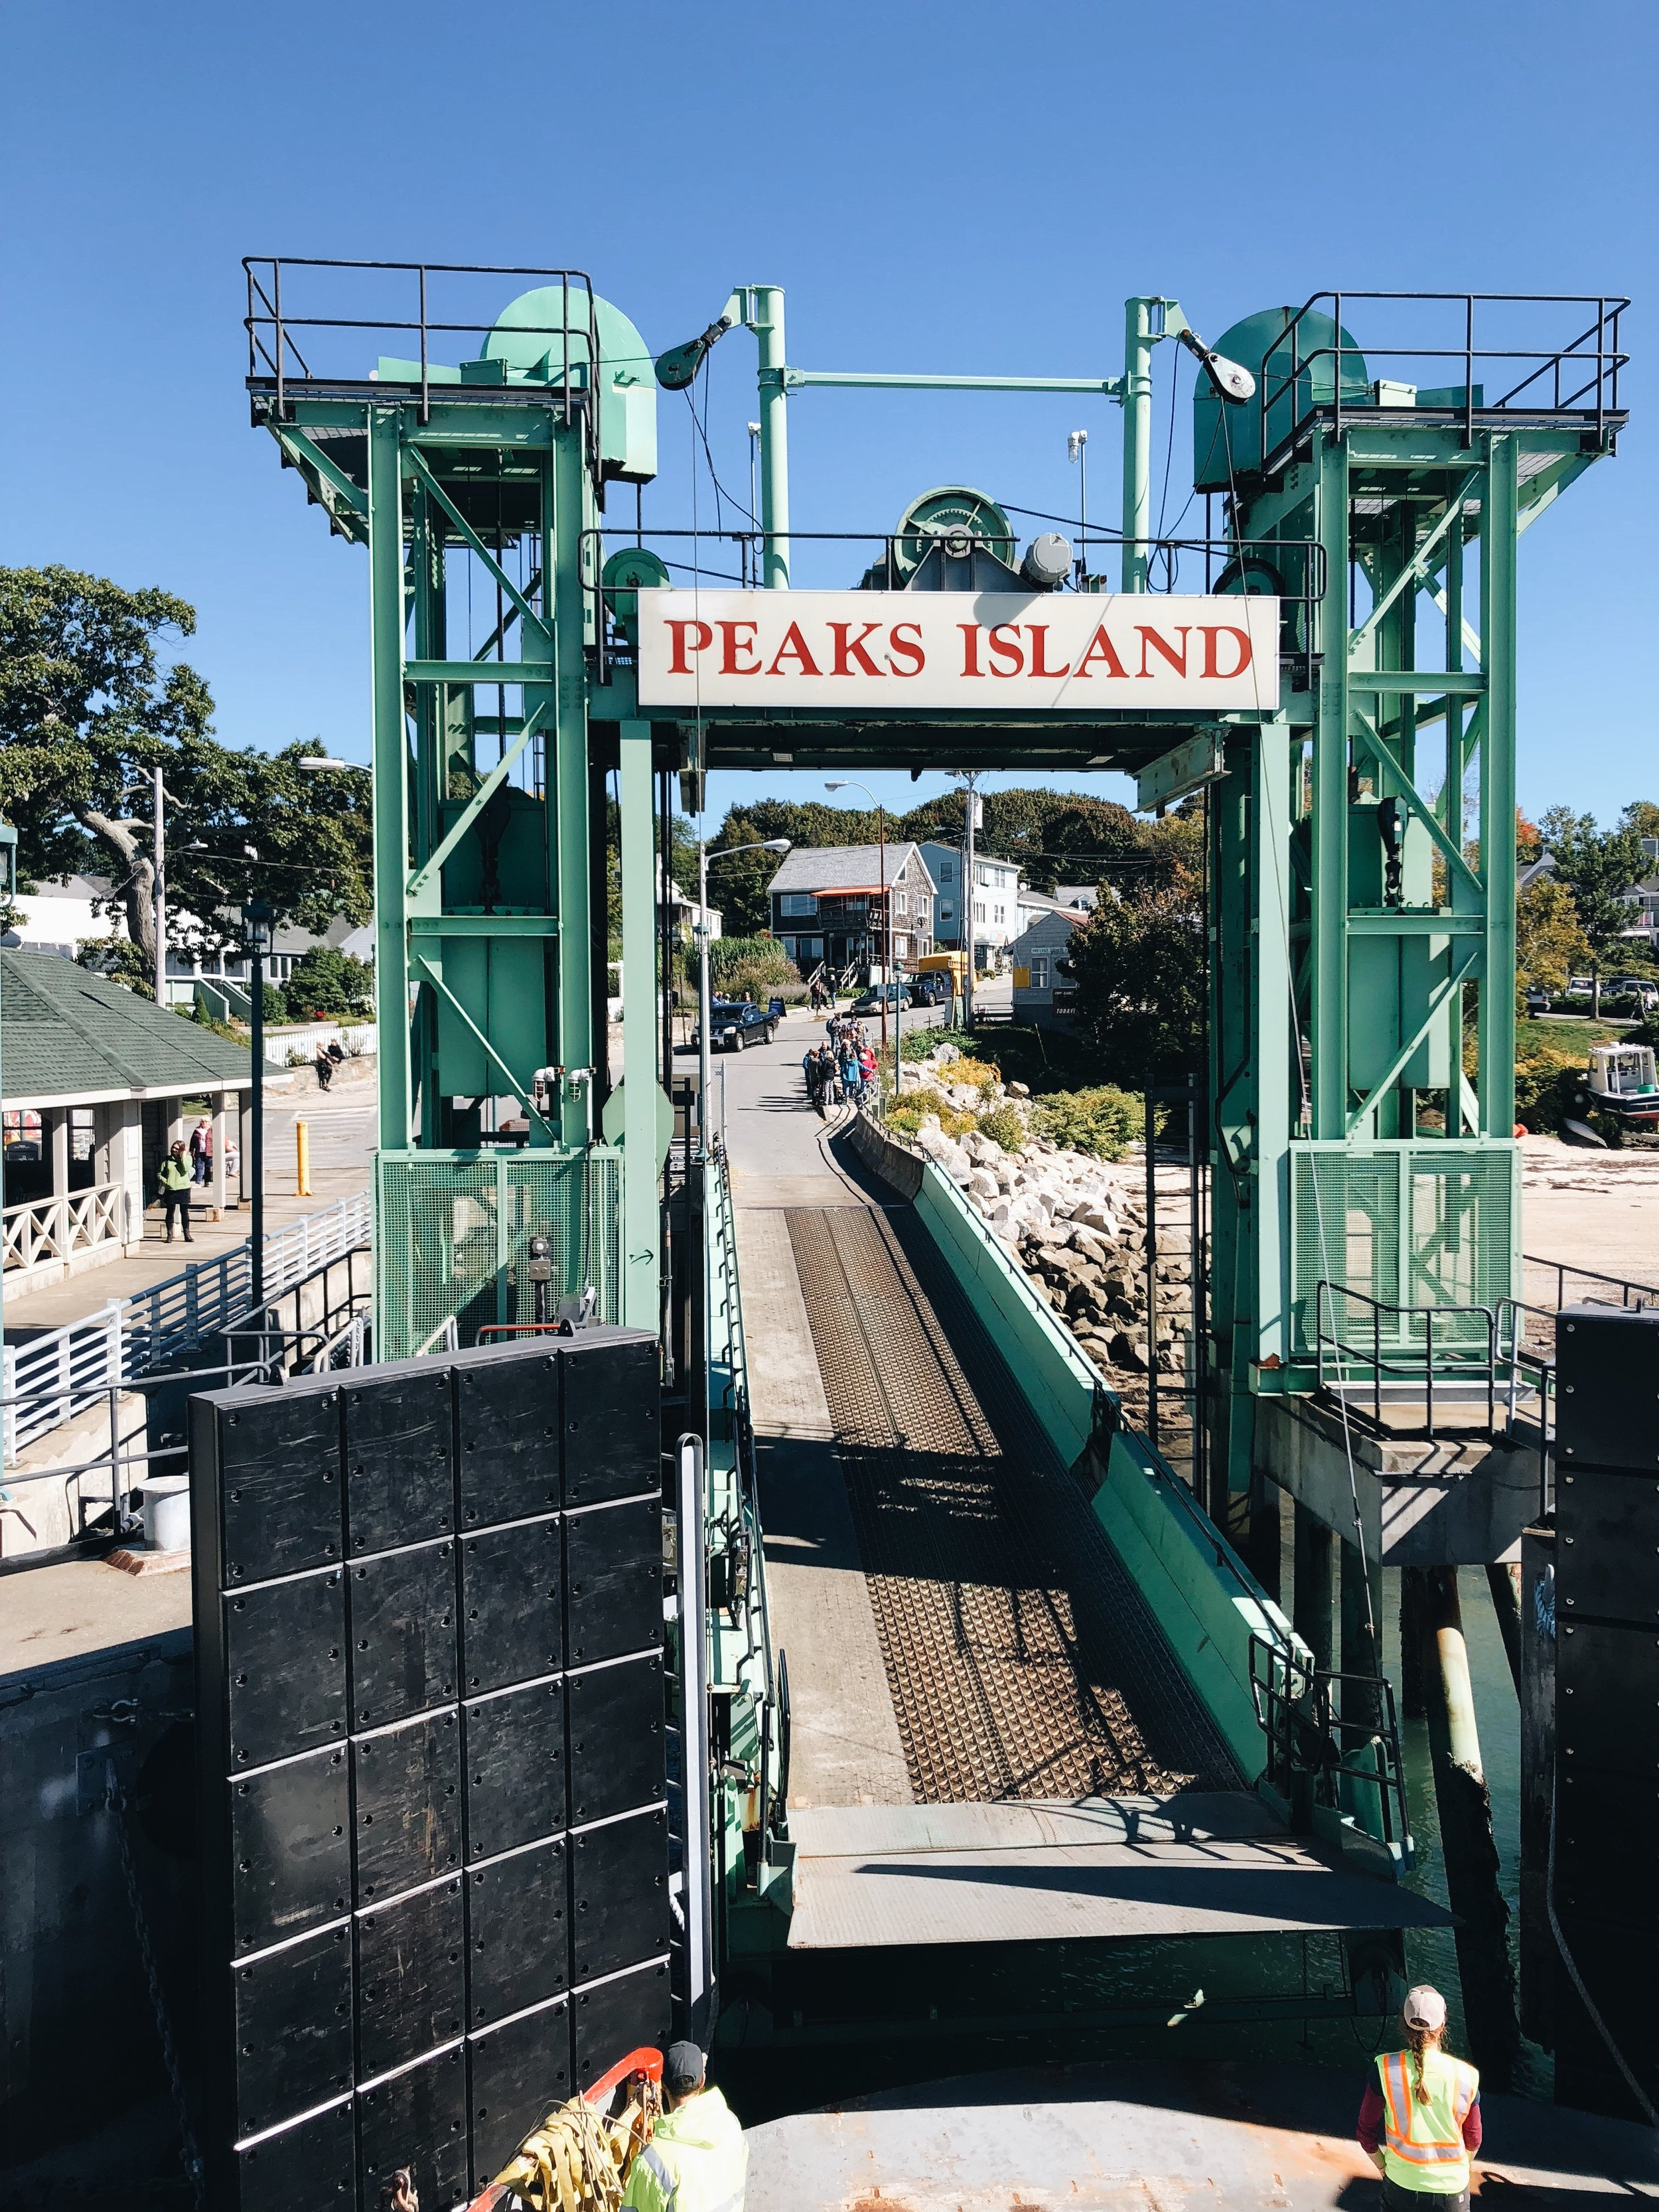 Arriving at Peaks Island via a ferry ride